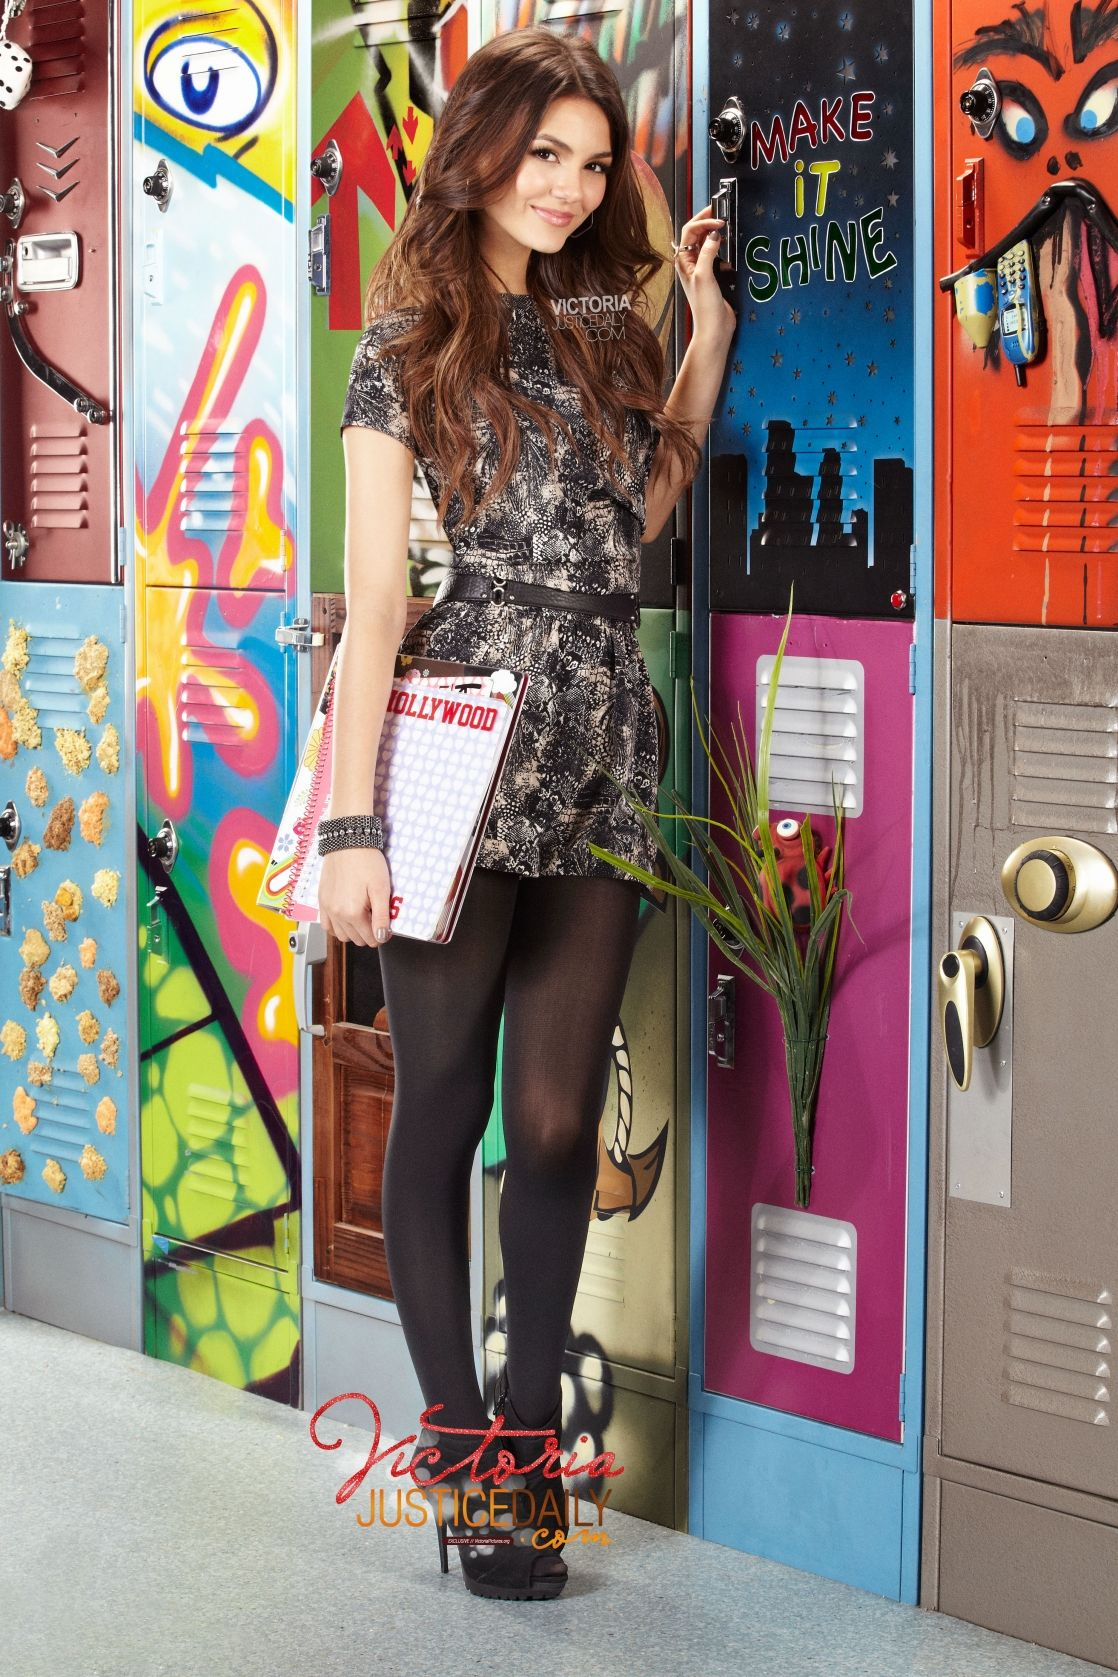 Accept. Victoria justice tights apologise